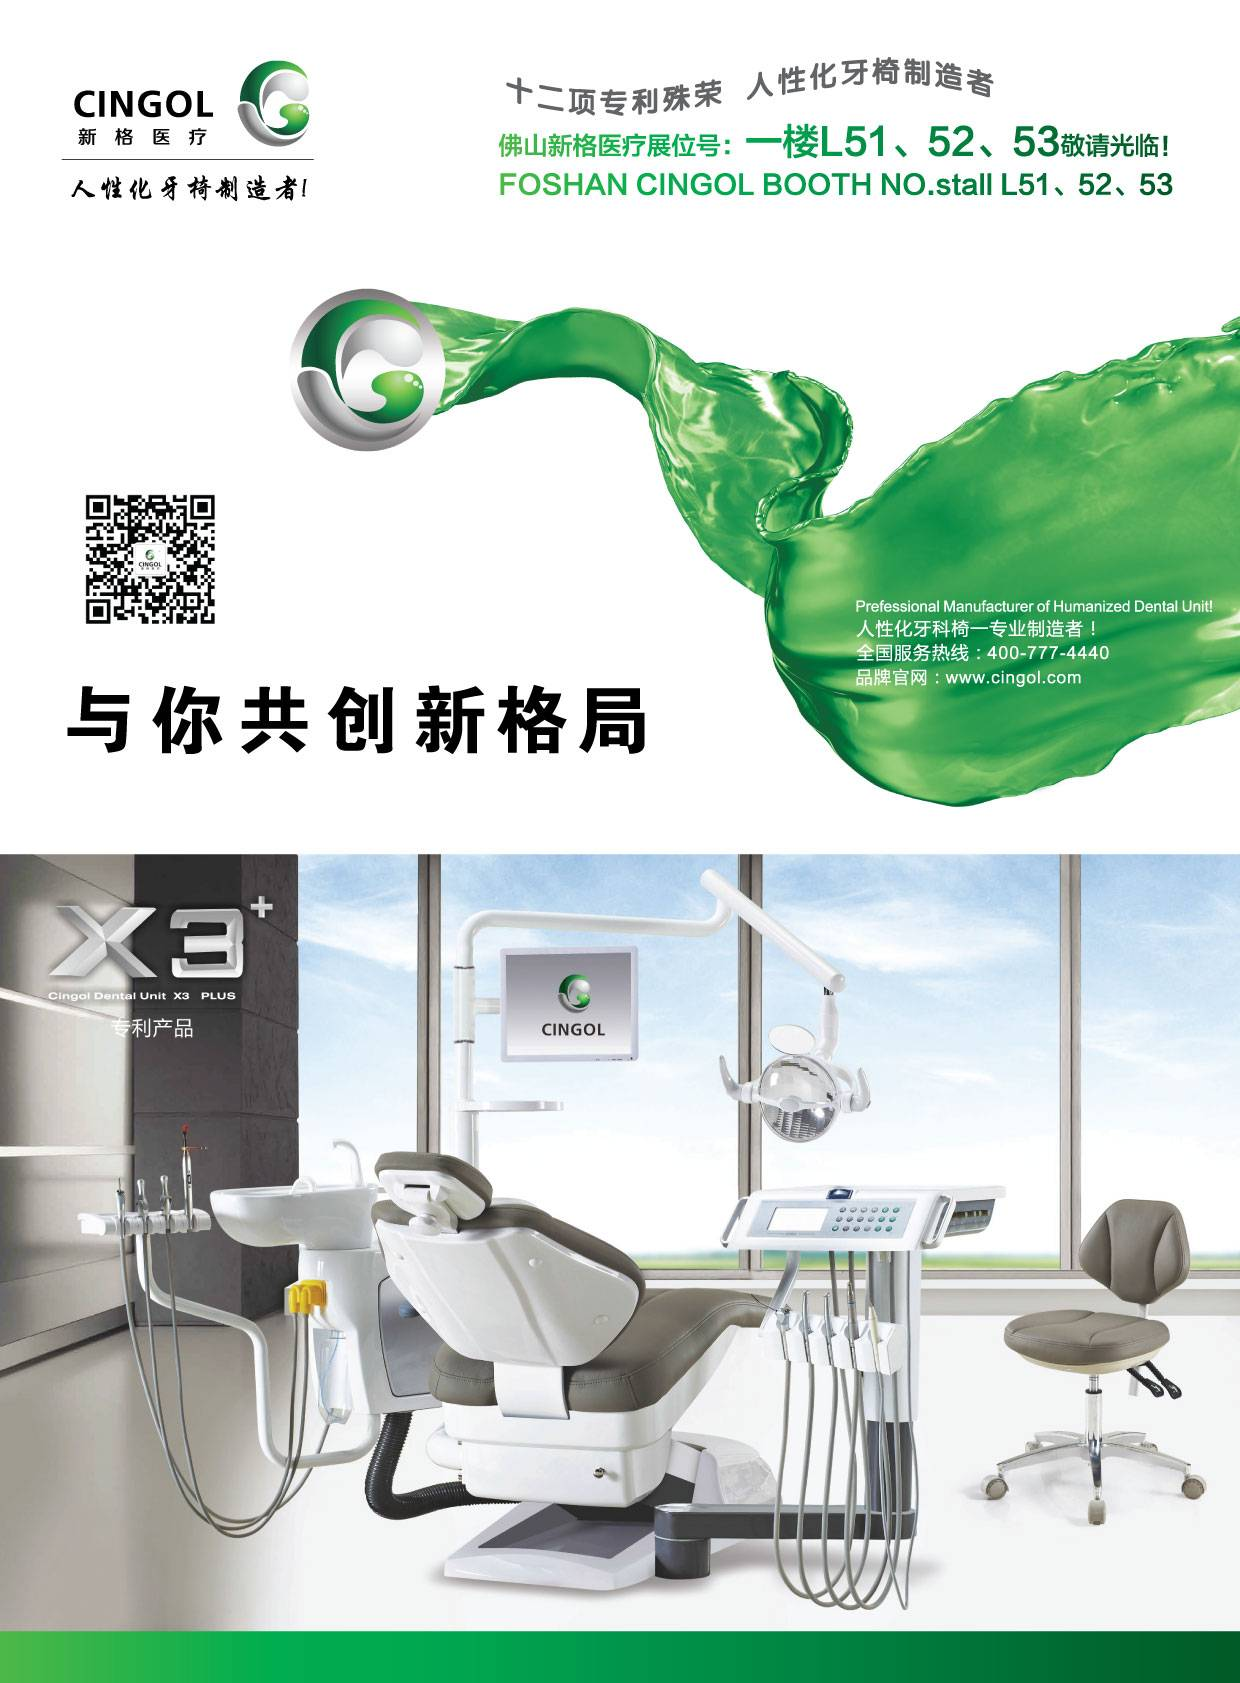 Cingol Humanized Dental Unit Medical Instrument